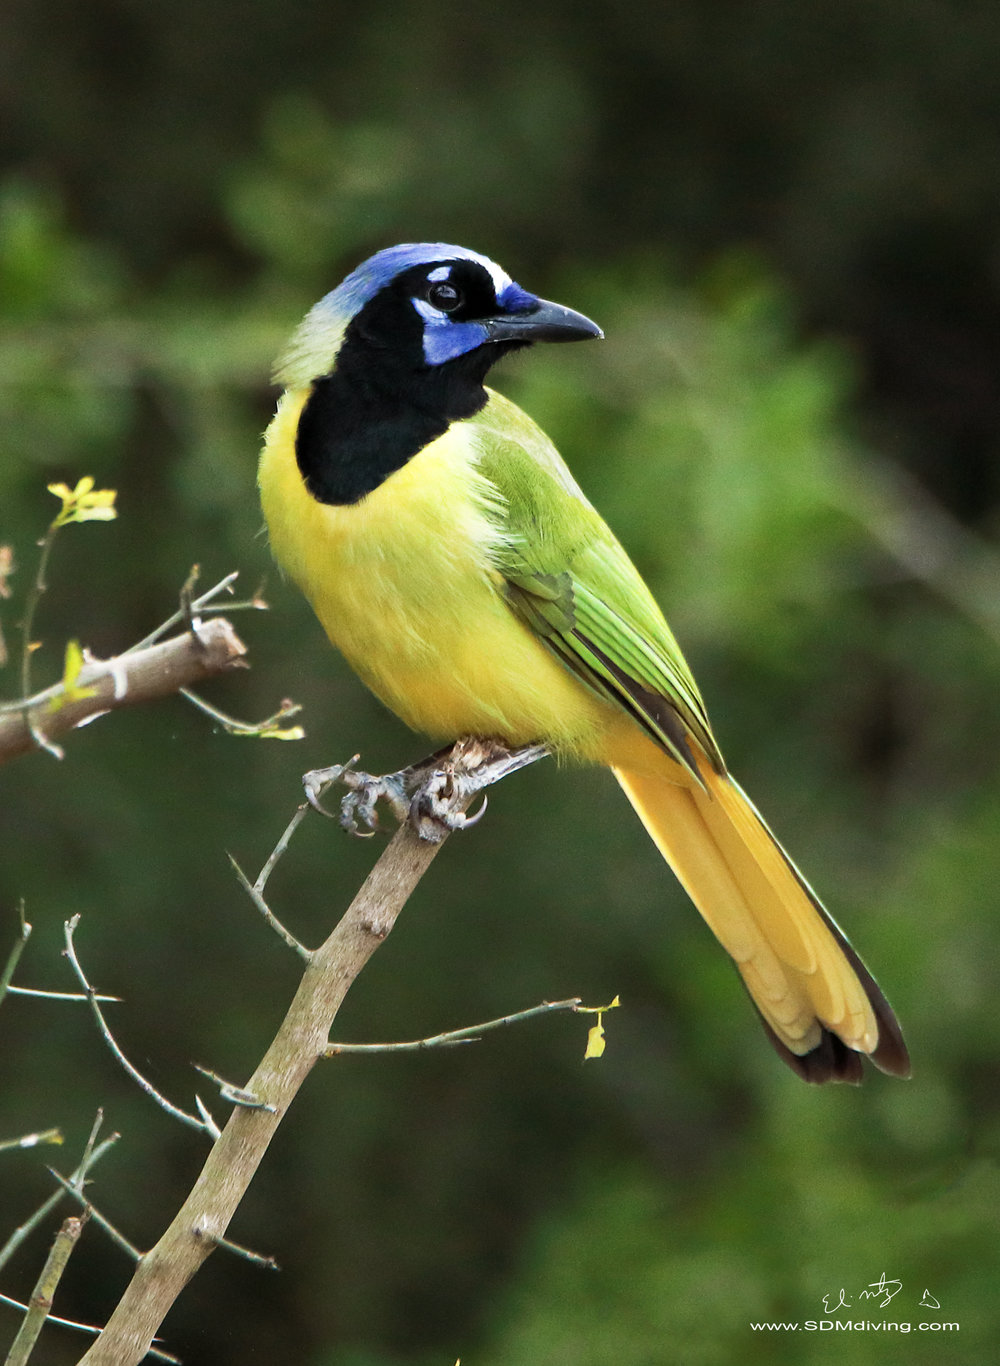 The star of the RIo Grande Valley, TX. The Greenjay